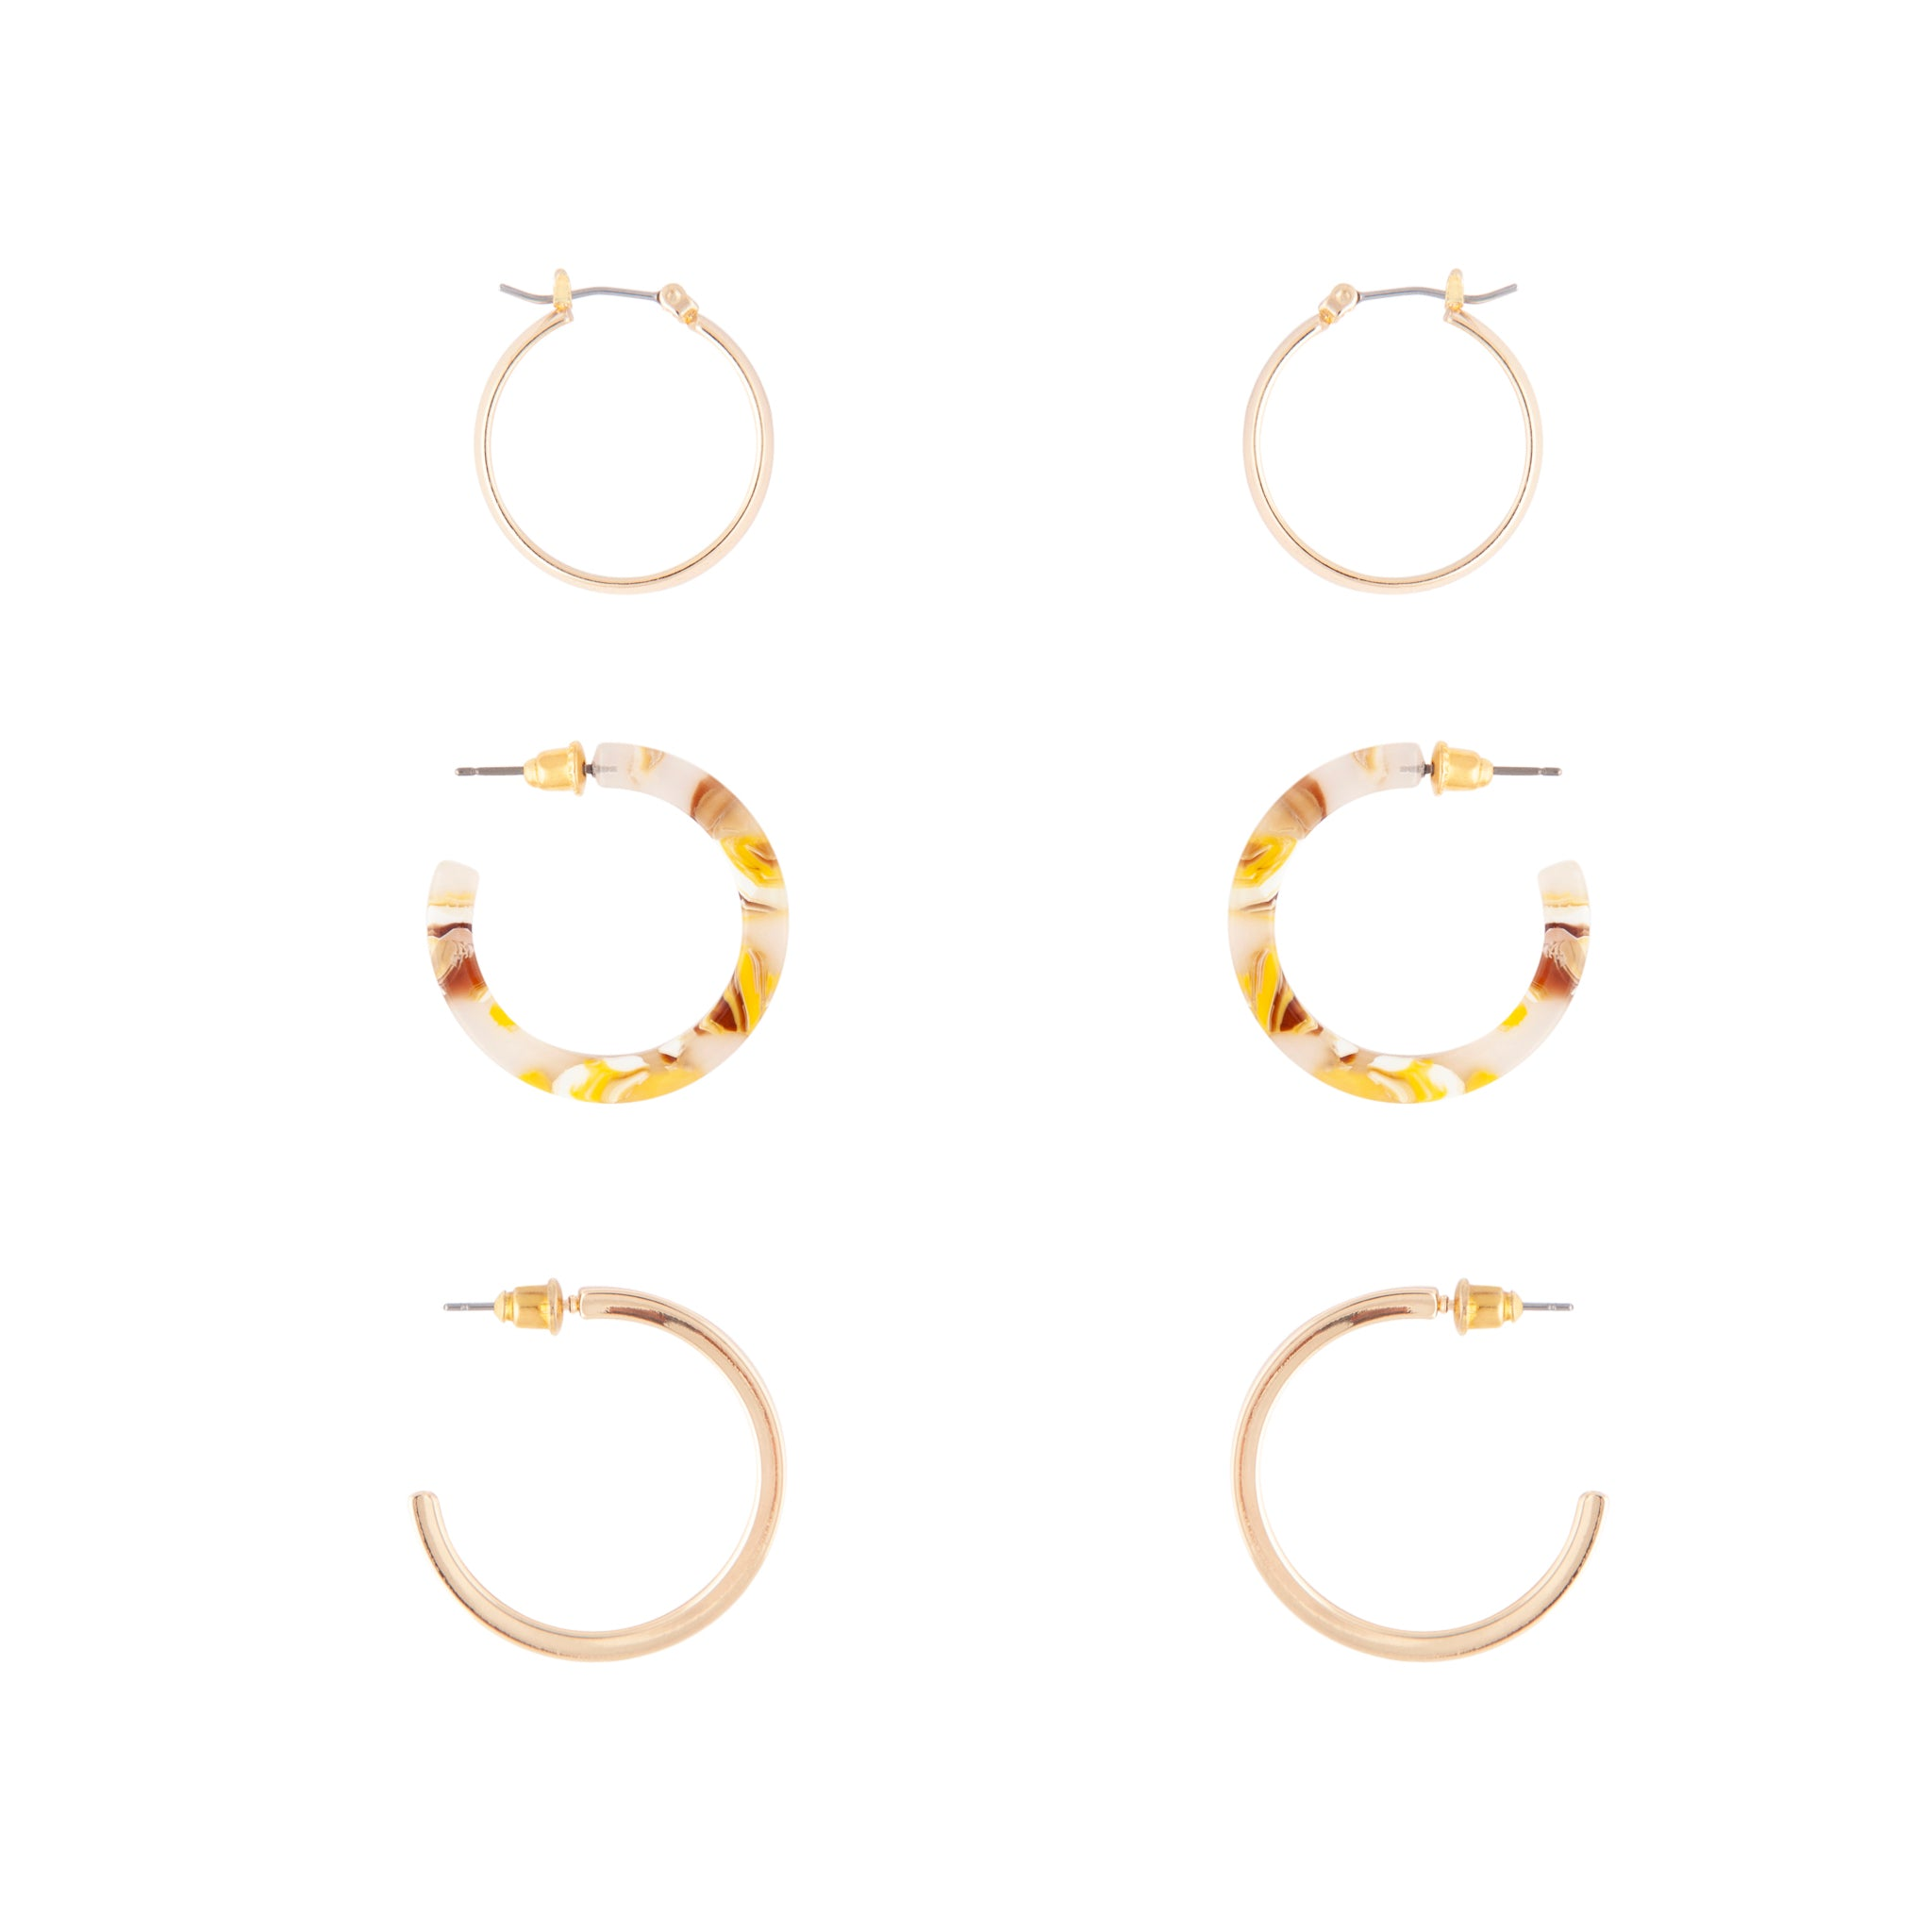 Gold Acrylic Metal Hoop Earring 3 Pack